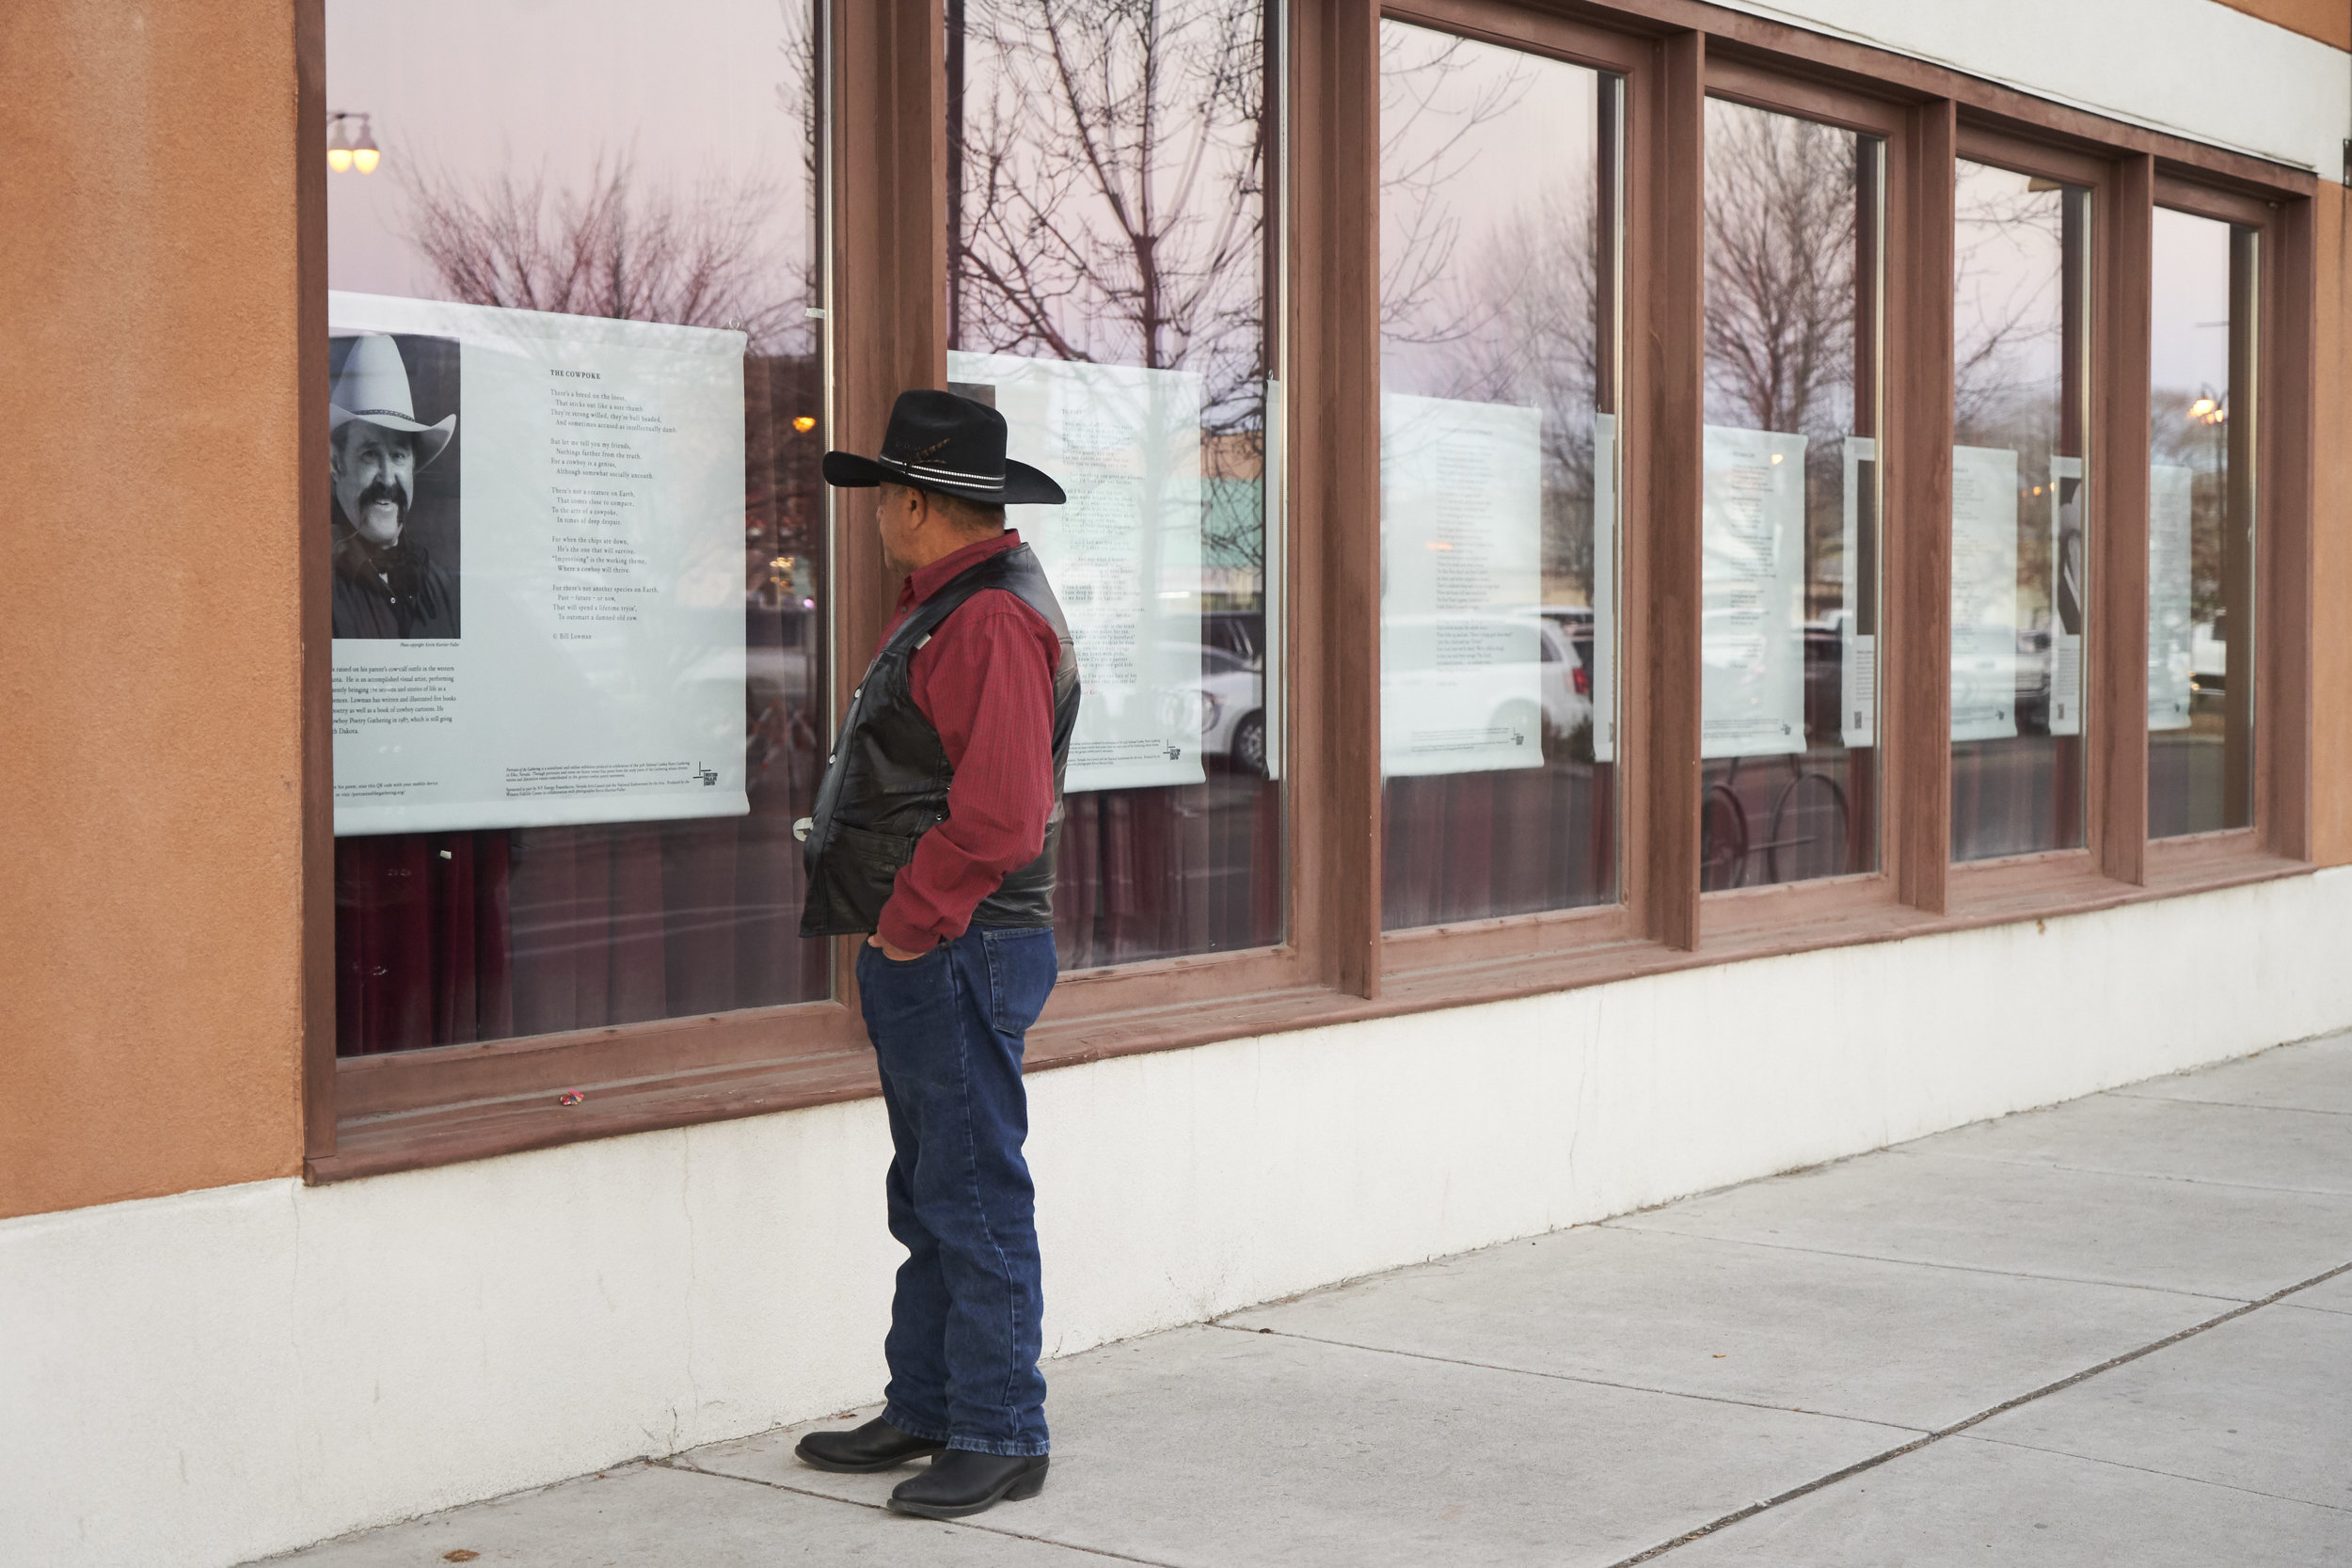 cowboy poetry — Blog — Western Folklife Center